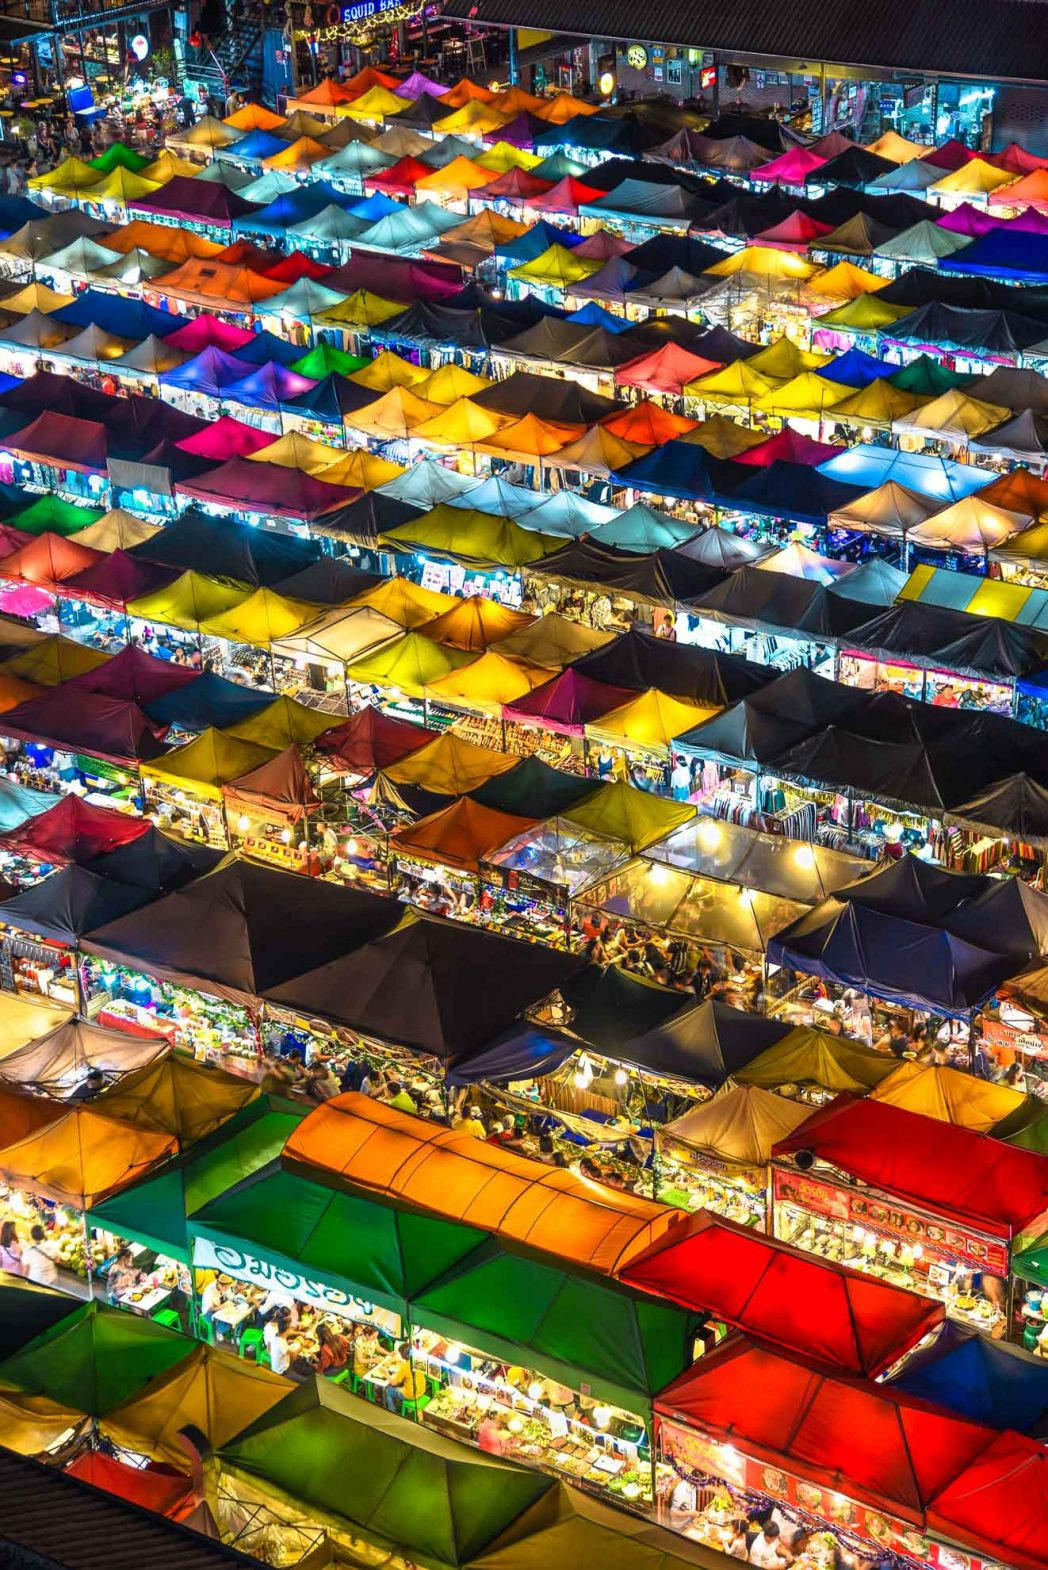 An aerial view of CentralWorld market in Bangkok, Thailand.